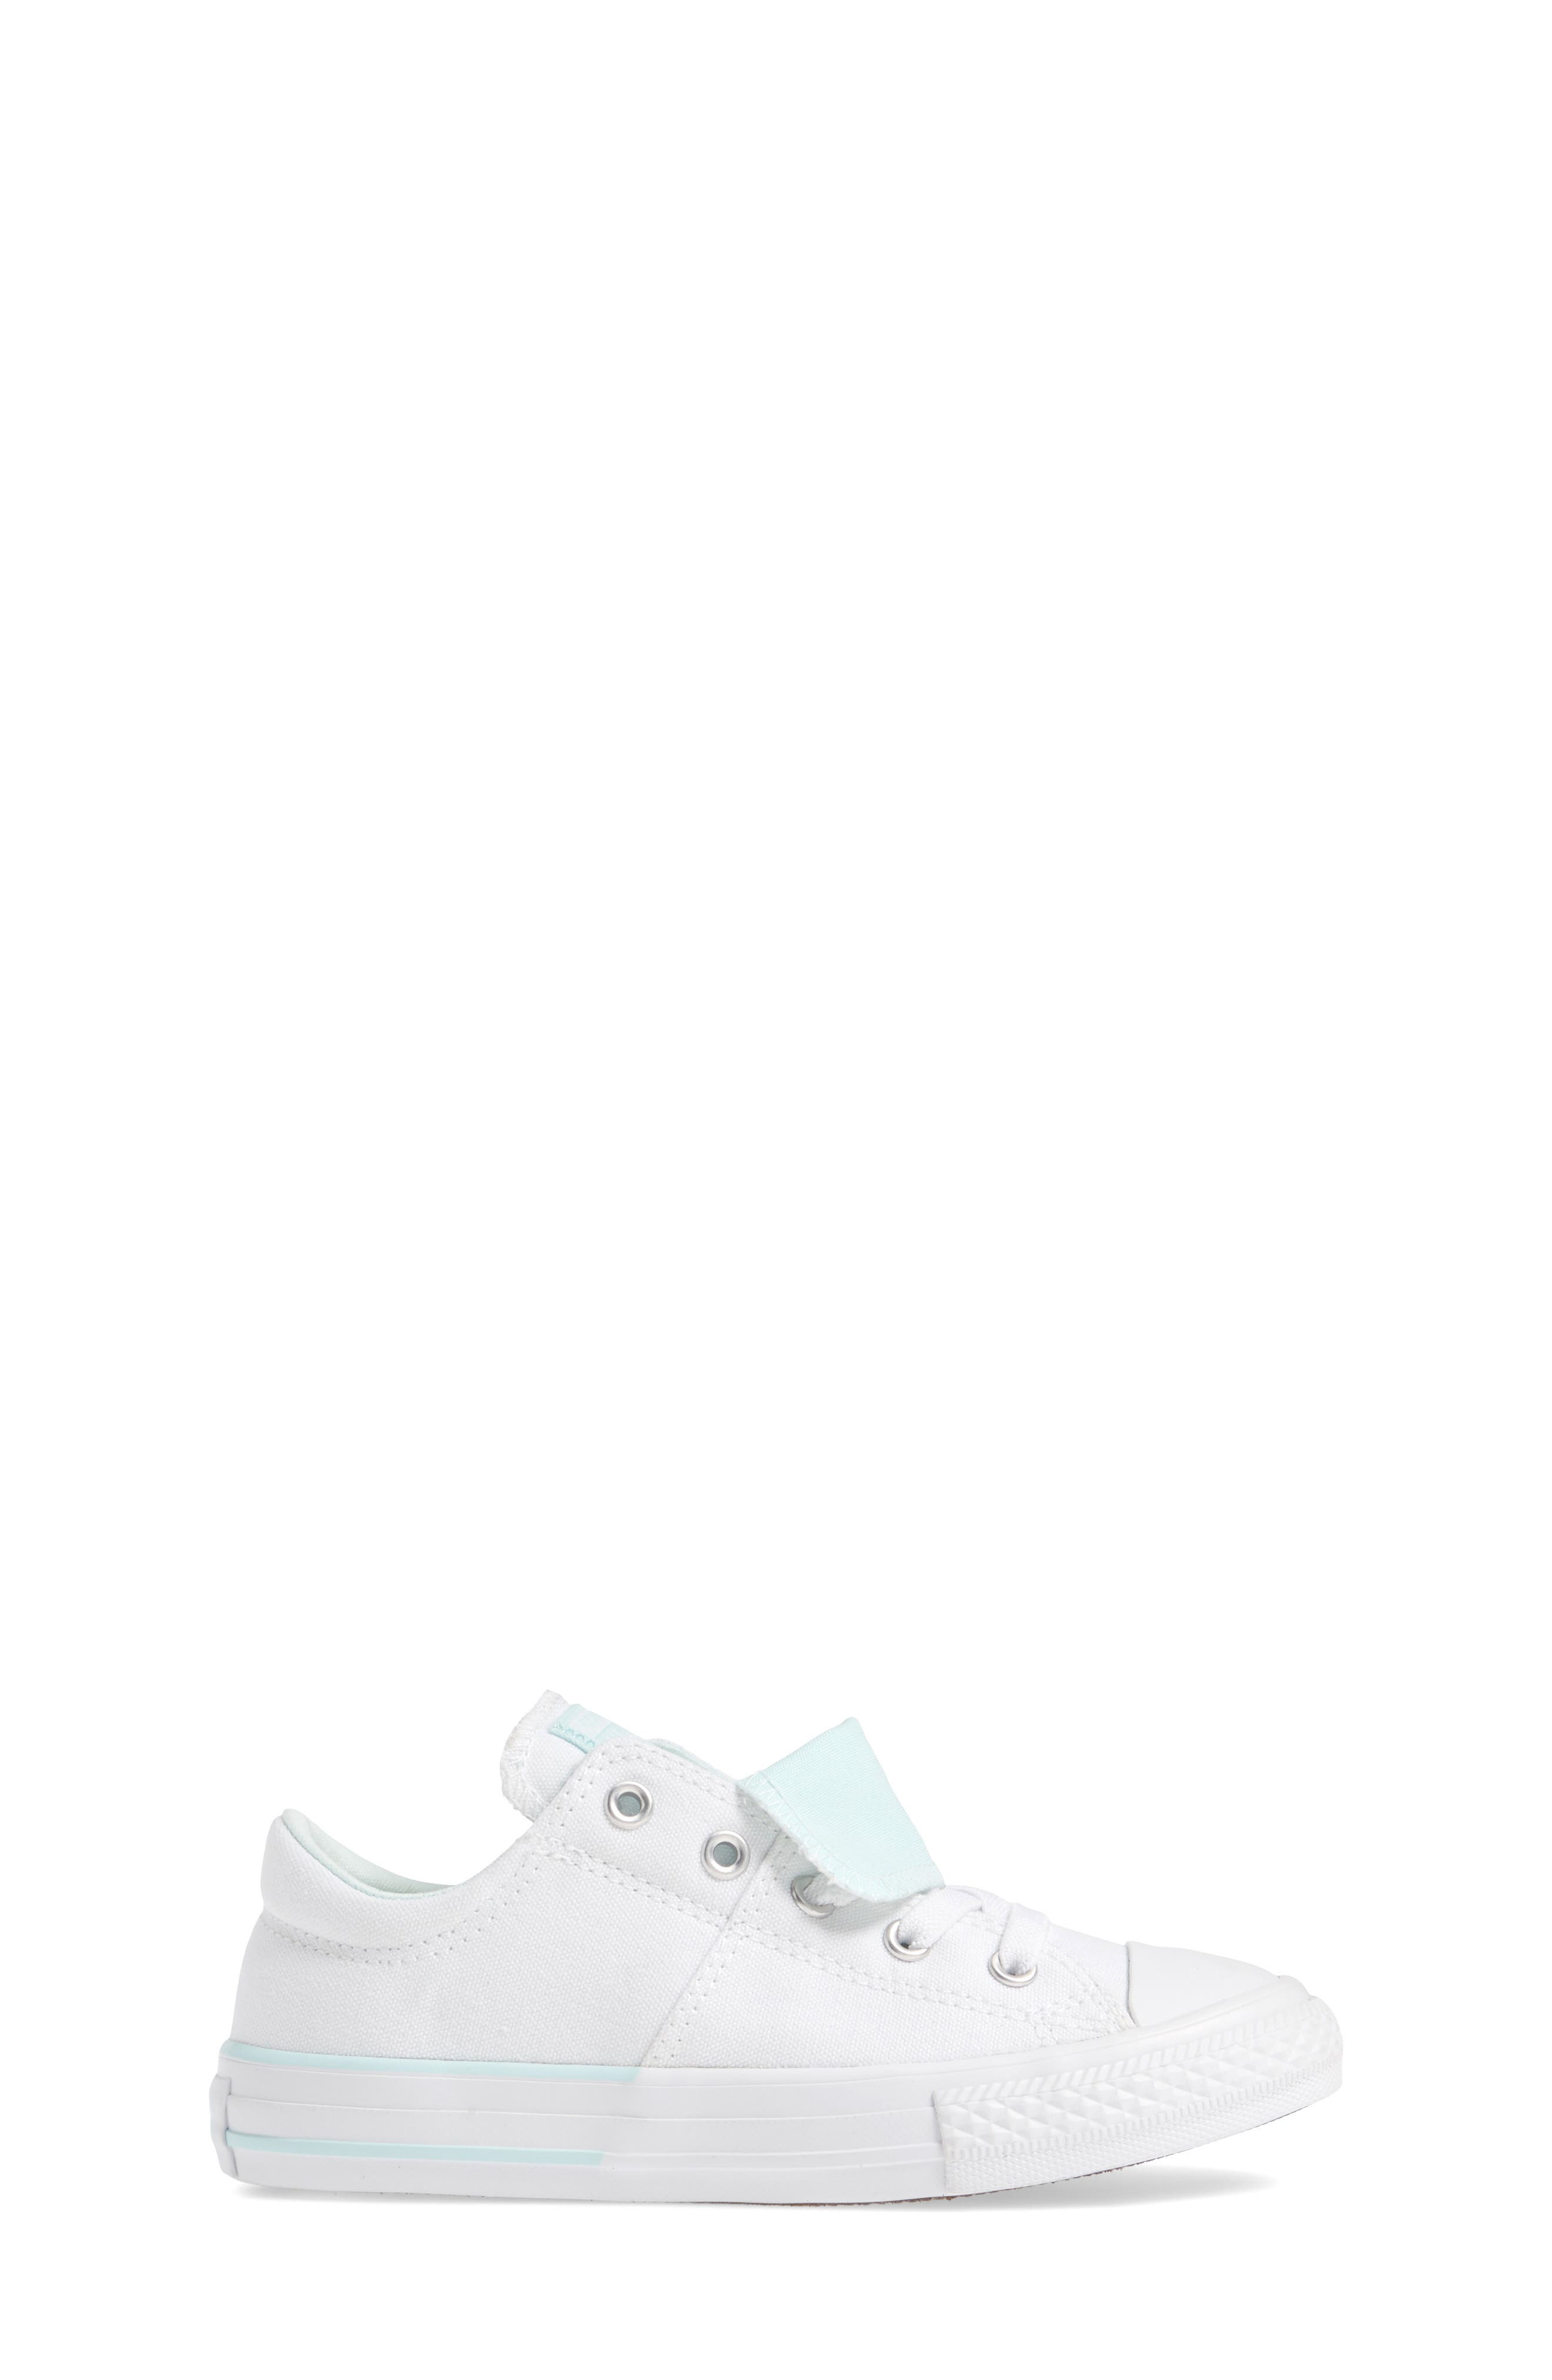 ,                             Chuck Taylor<sup>®</sup> All Star<sup>®</sup> Maddie Double Tongue Sneaker,                             Alternate thumbnail 69, color,                             102